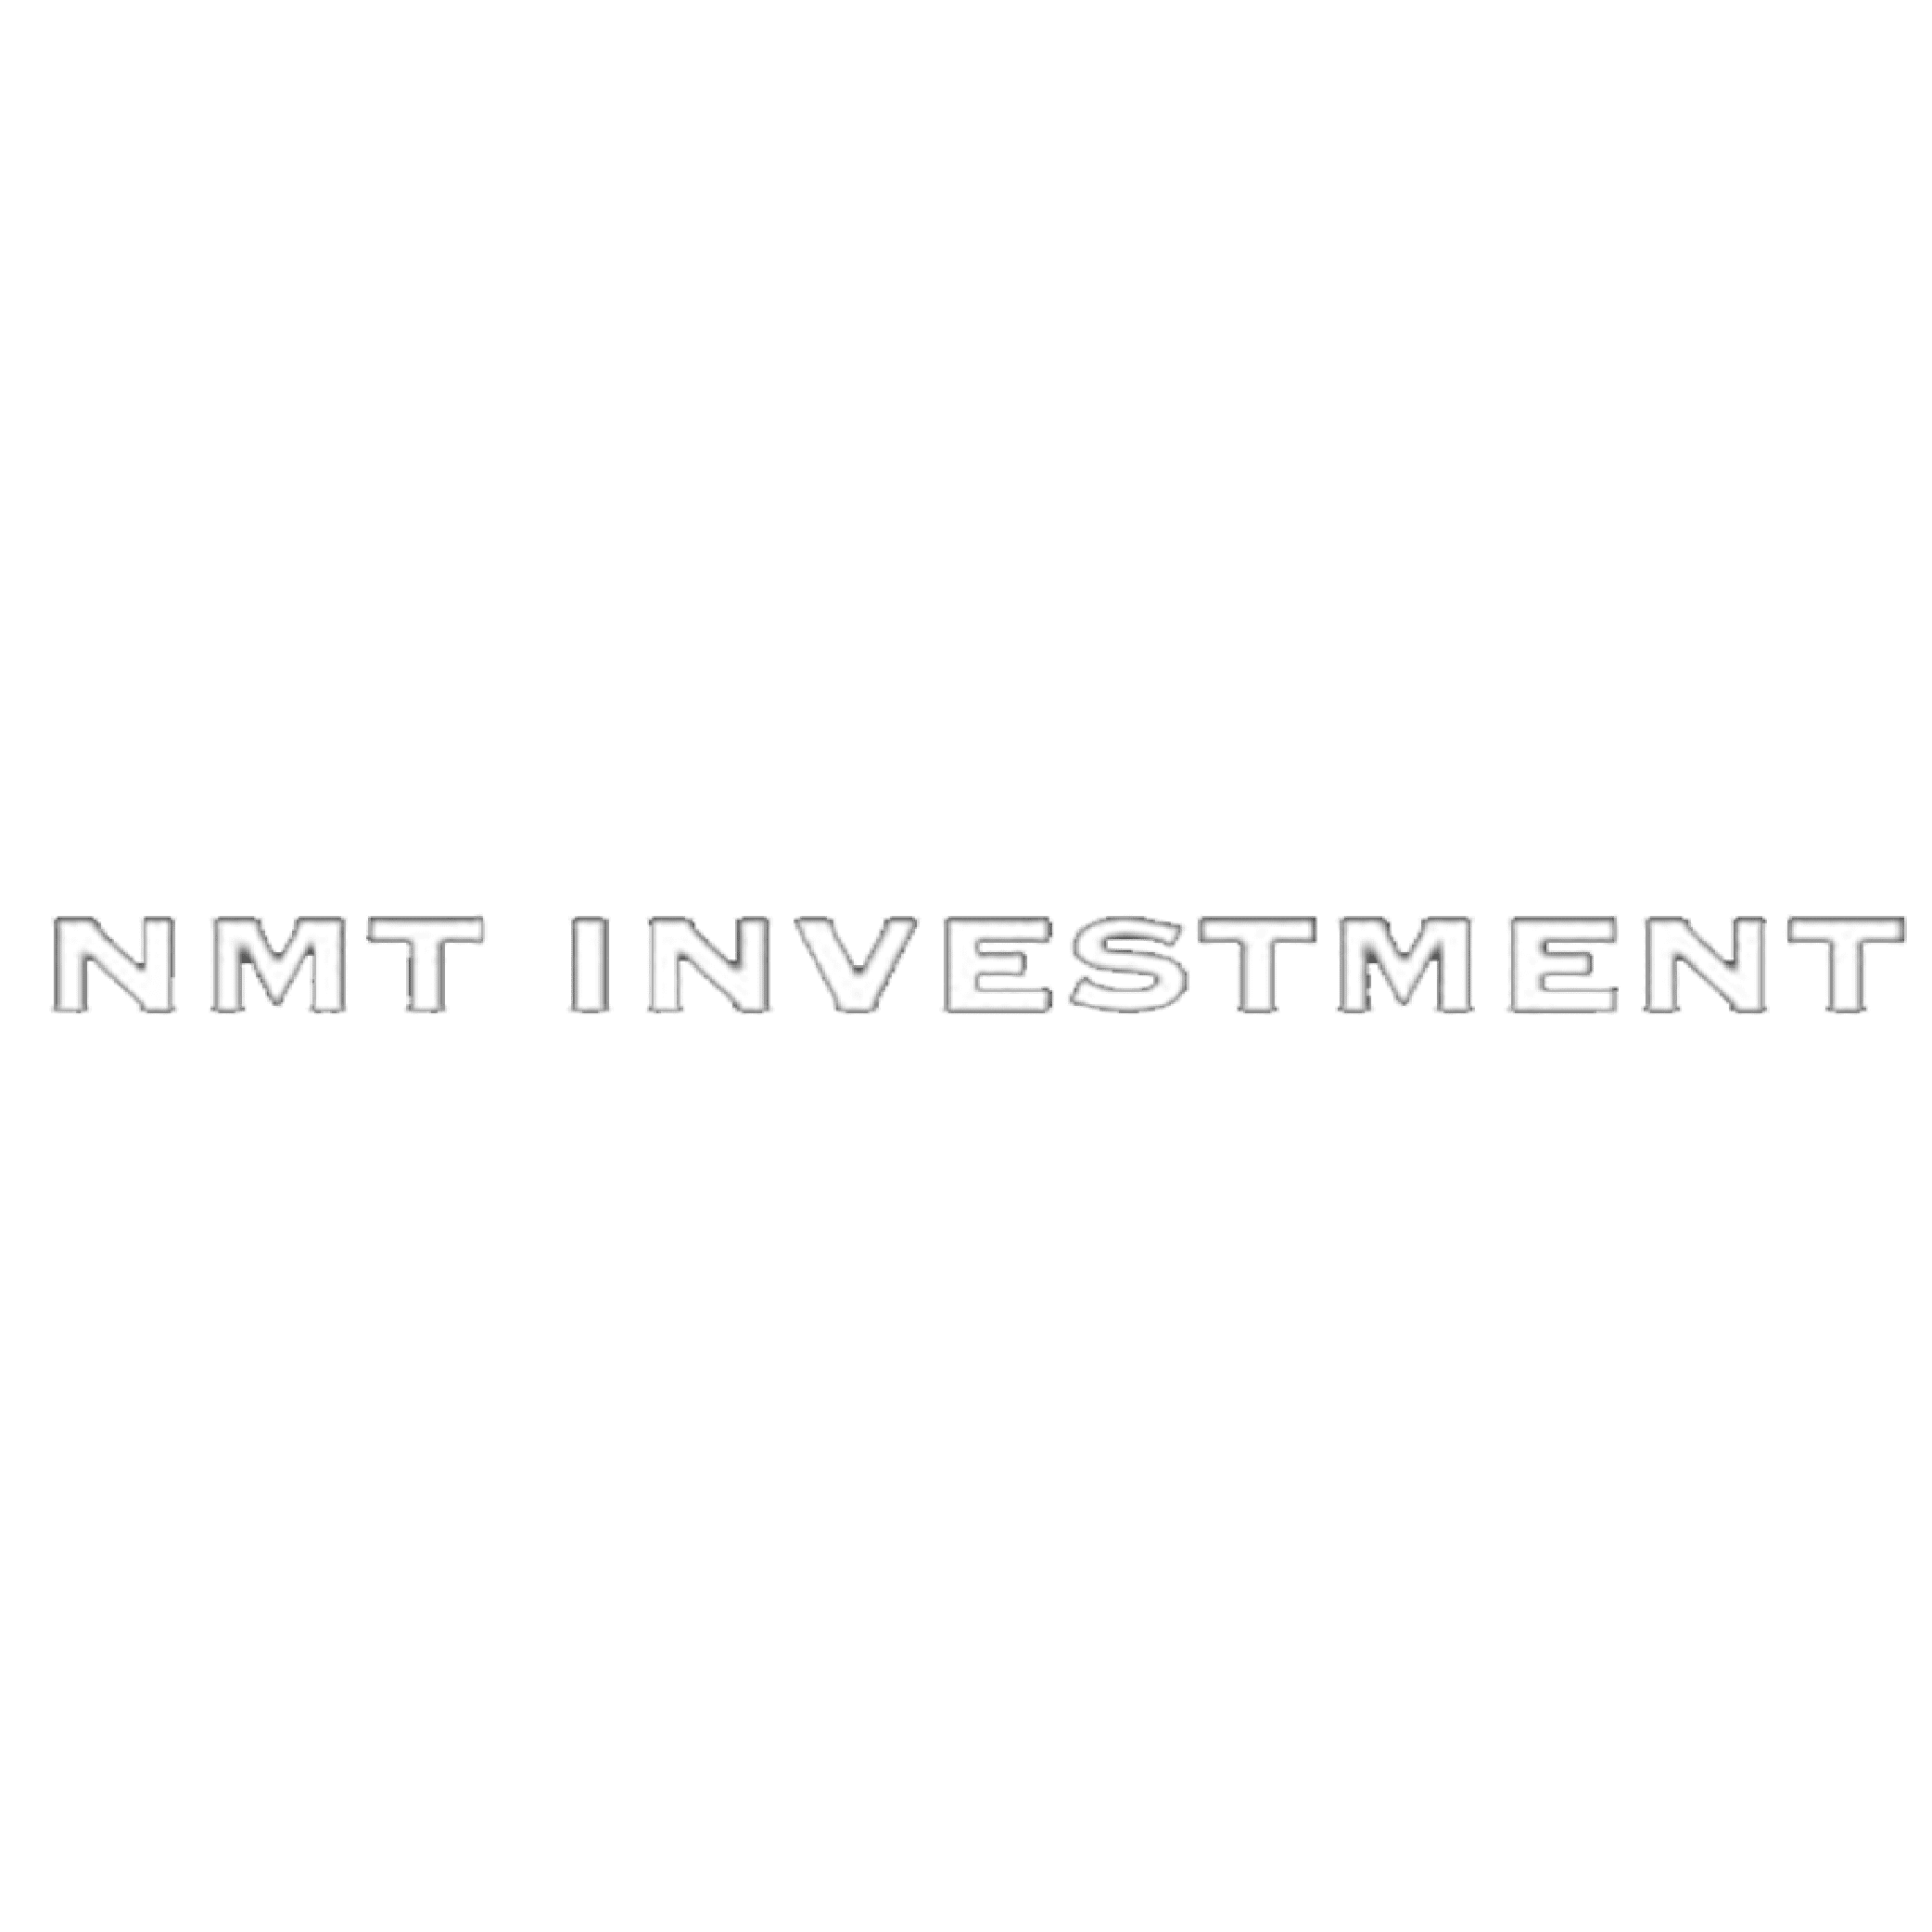 NMT Investments